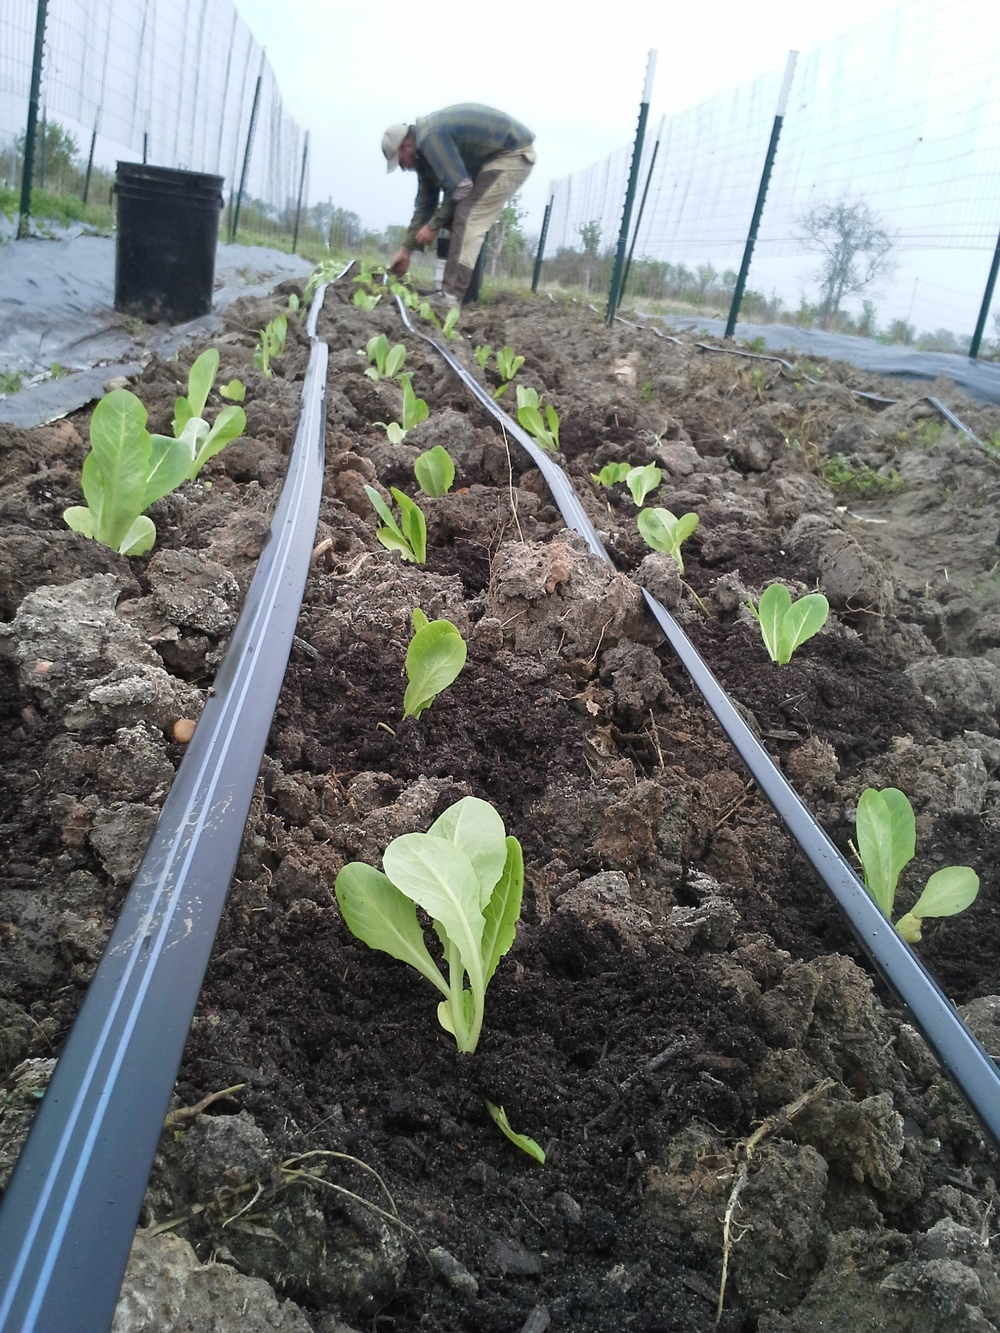 Jericho romaine lettuce, planted on a blustery March day. Hold on, babies!